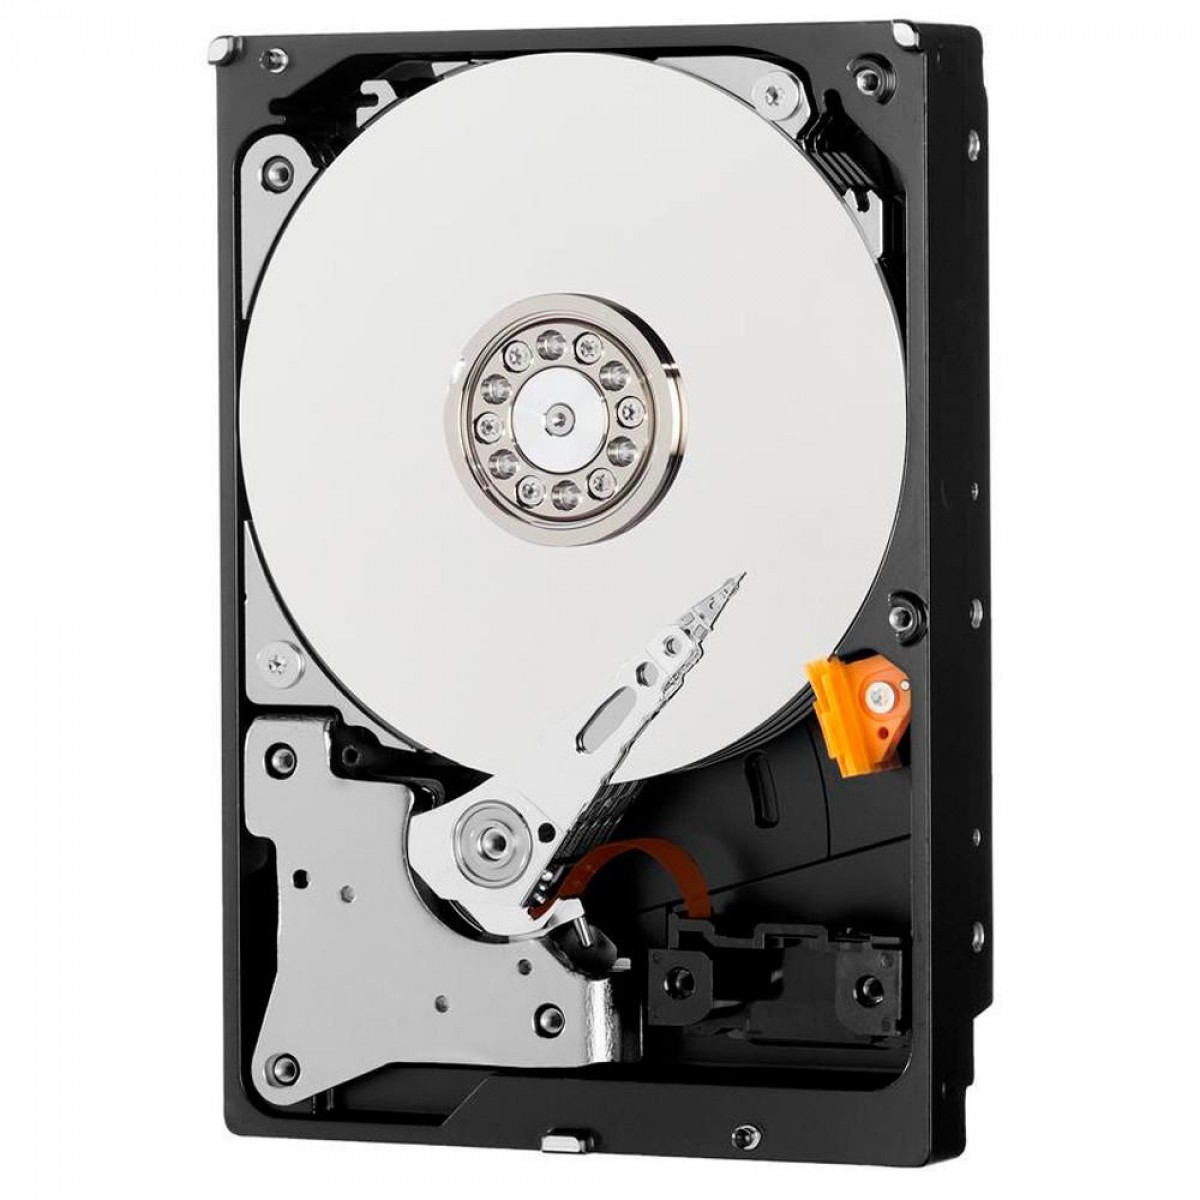 HD Western Digital 1TB Purple WD10PURX 64MB SATA III, WD10PURX